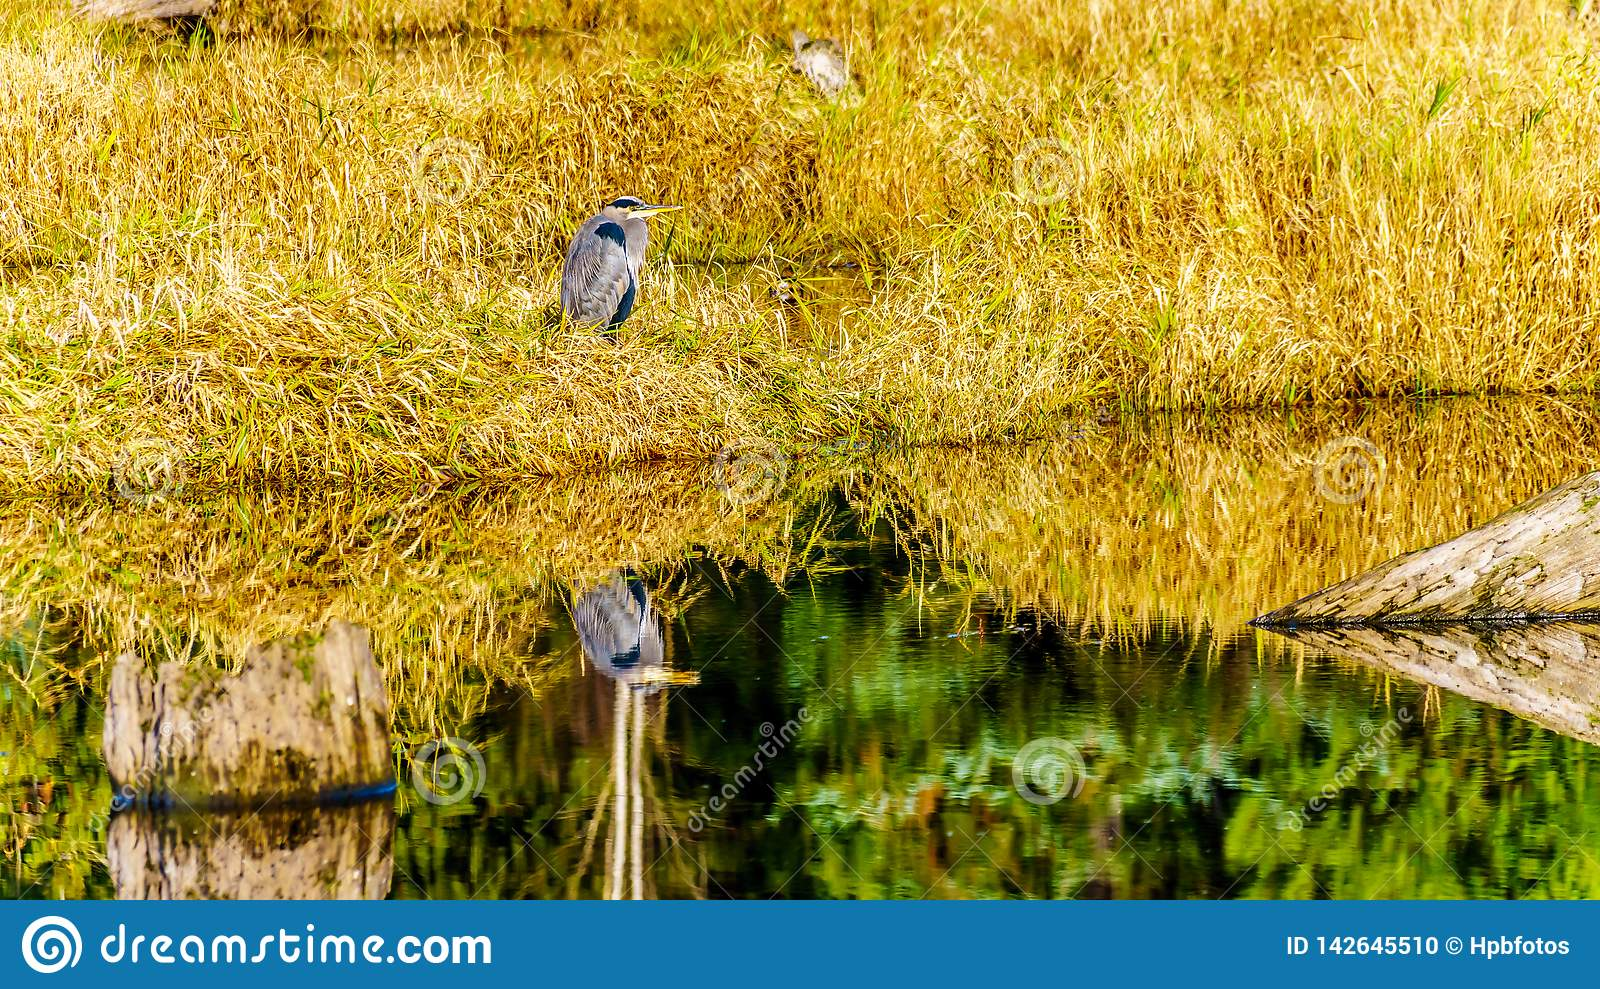 A Great Blue Heron reflection in the calm water of the Silverdale Creek Wetlands, a freshwater Marsh near Mission, BC, Canada